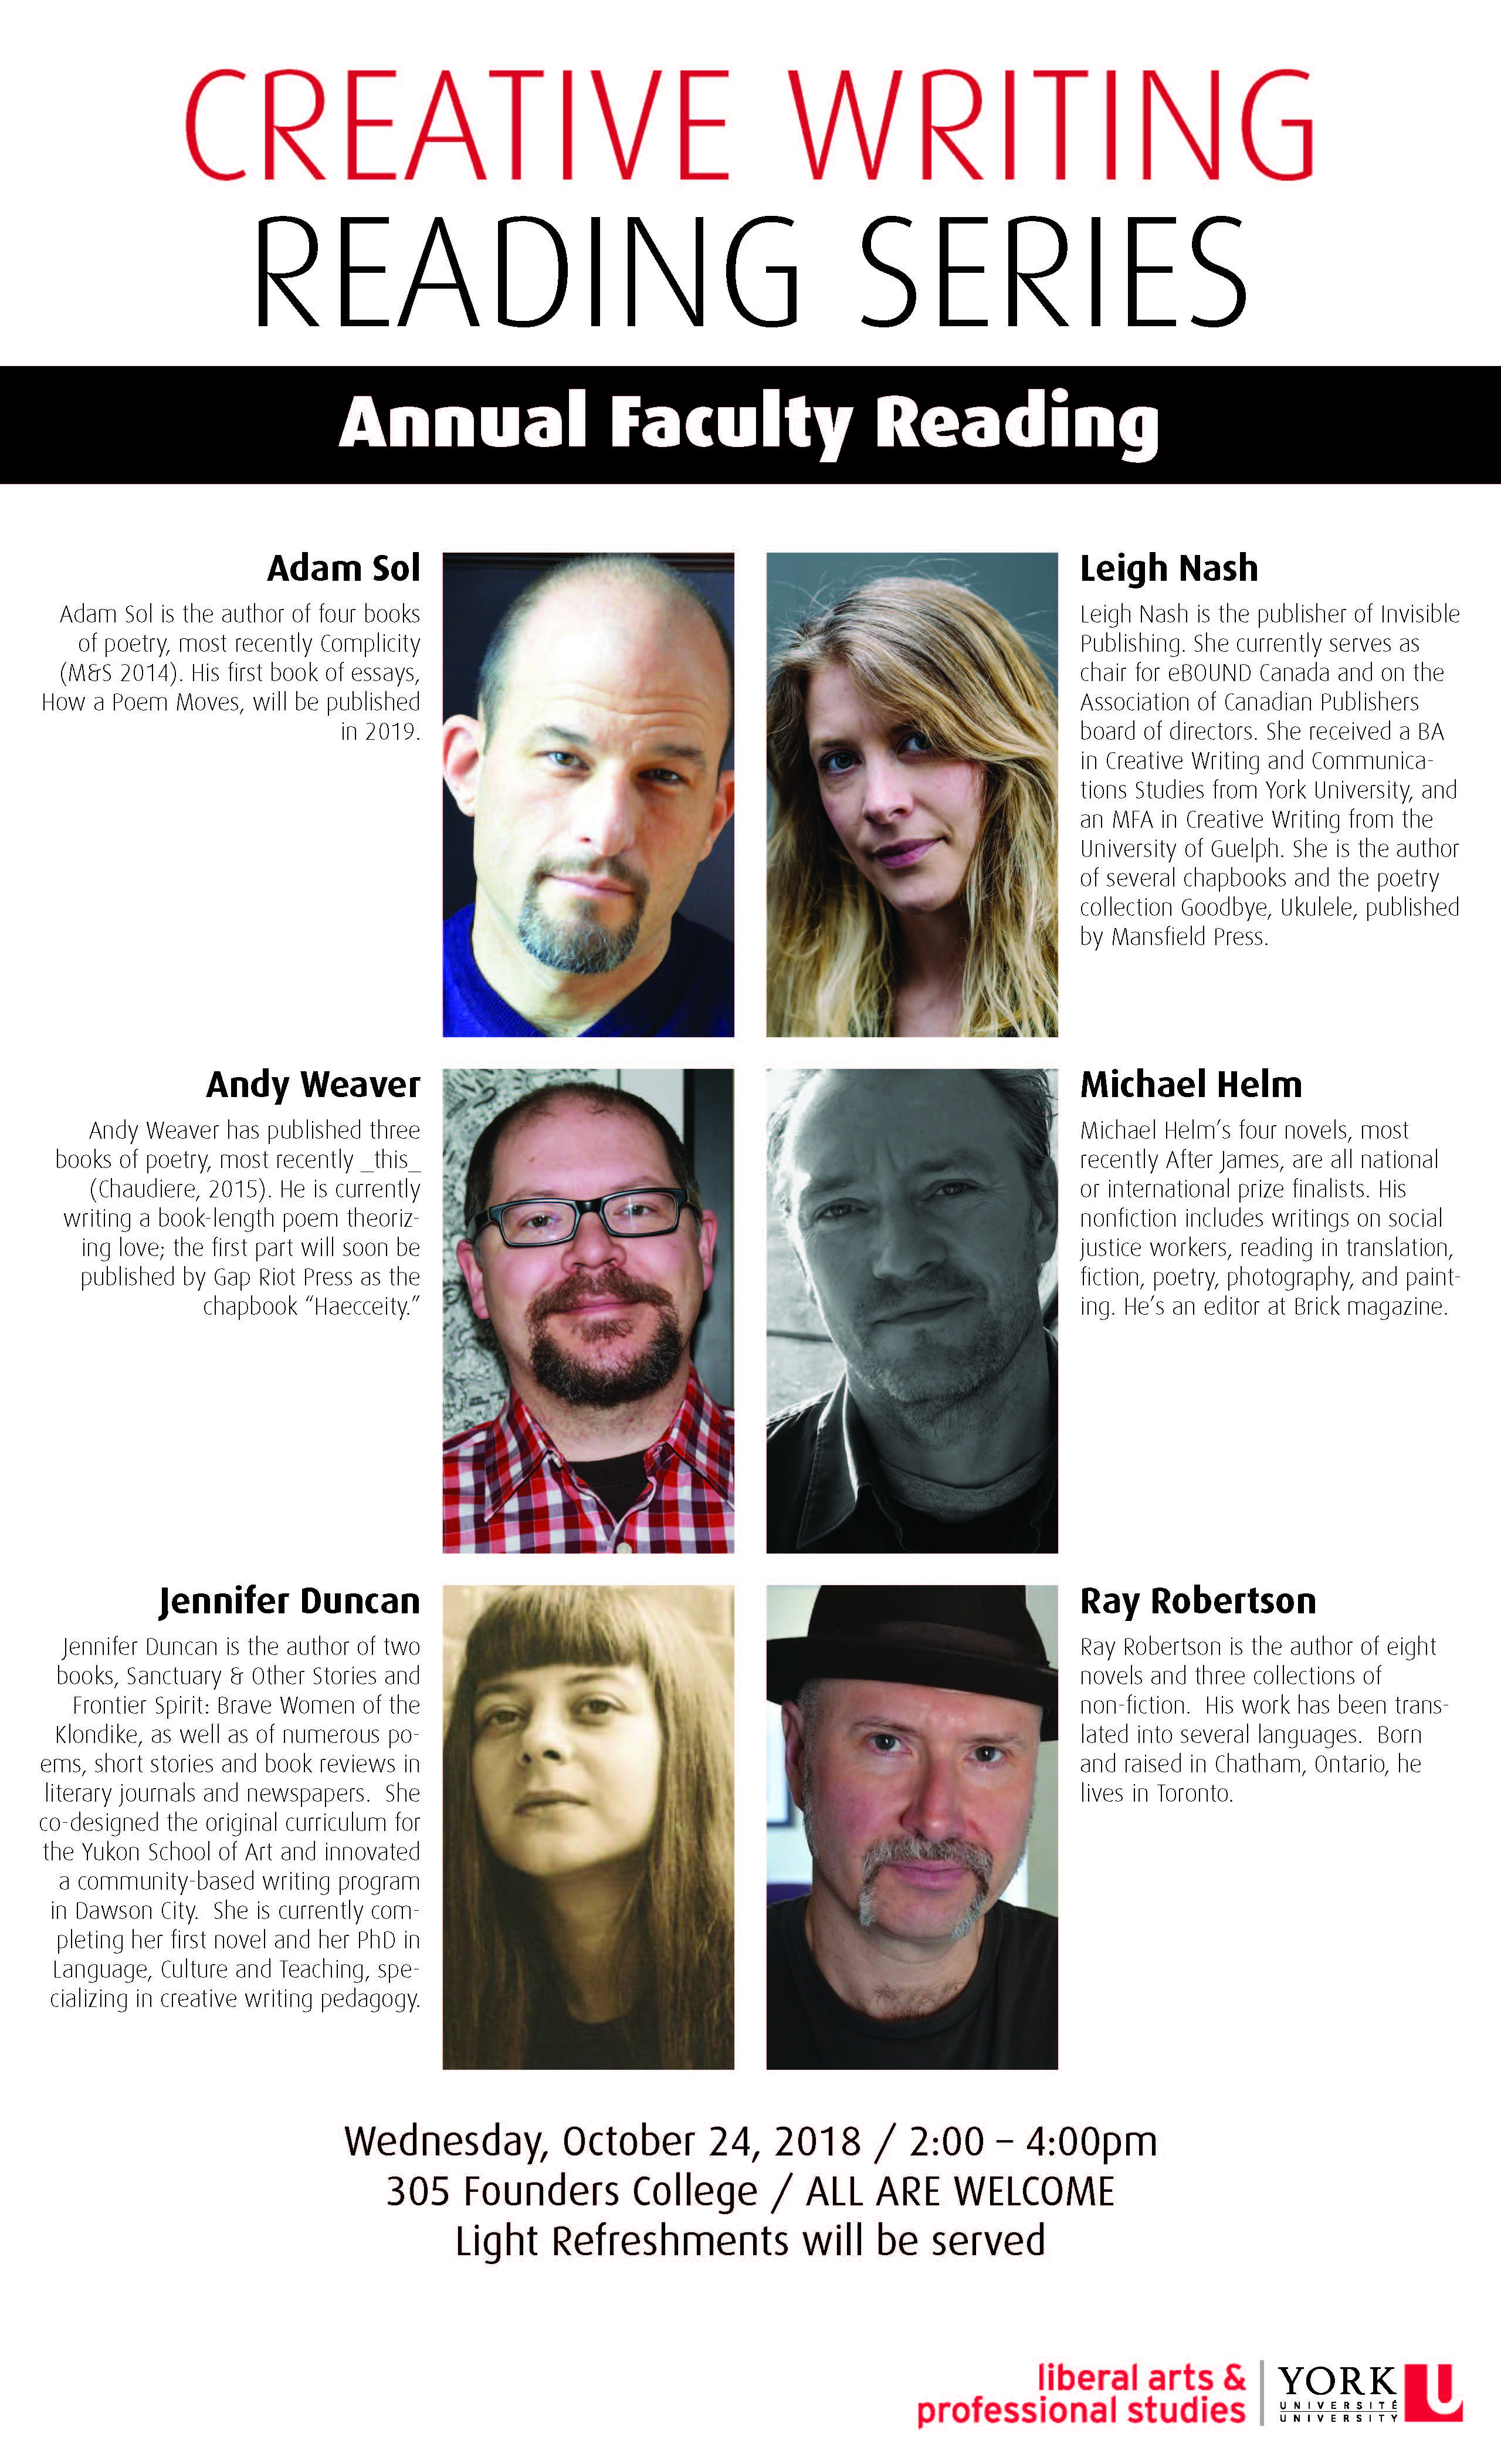 CREATIVE WRITING READING SERIES poster